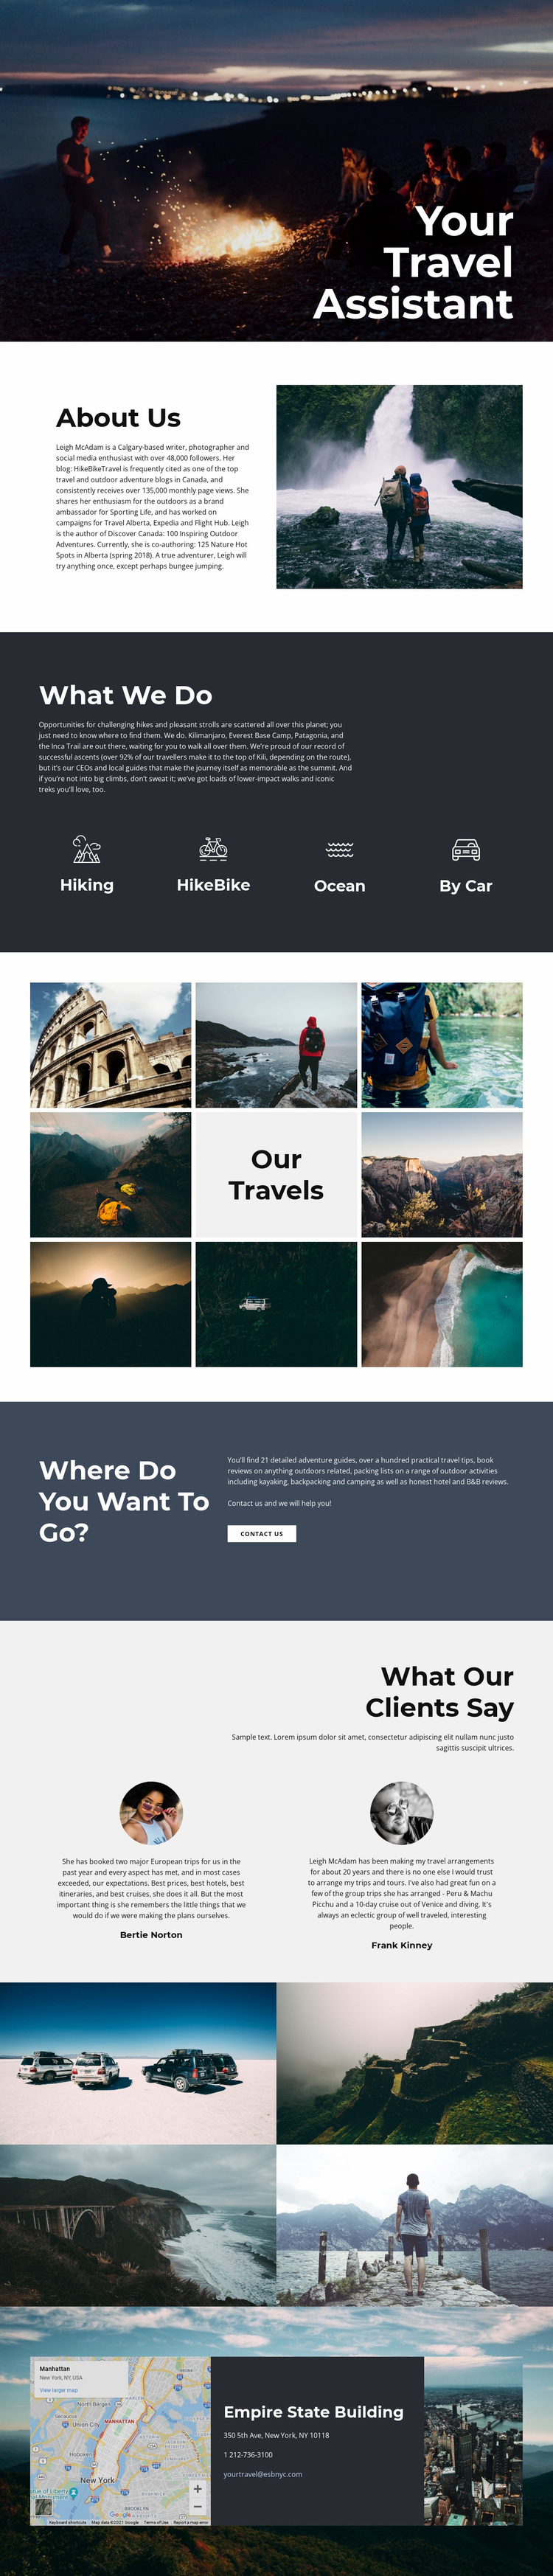 Travel Assistant Website Design